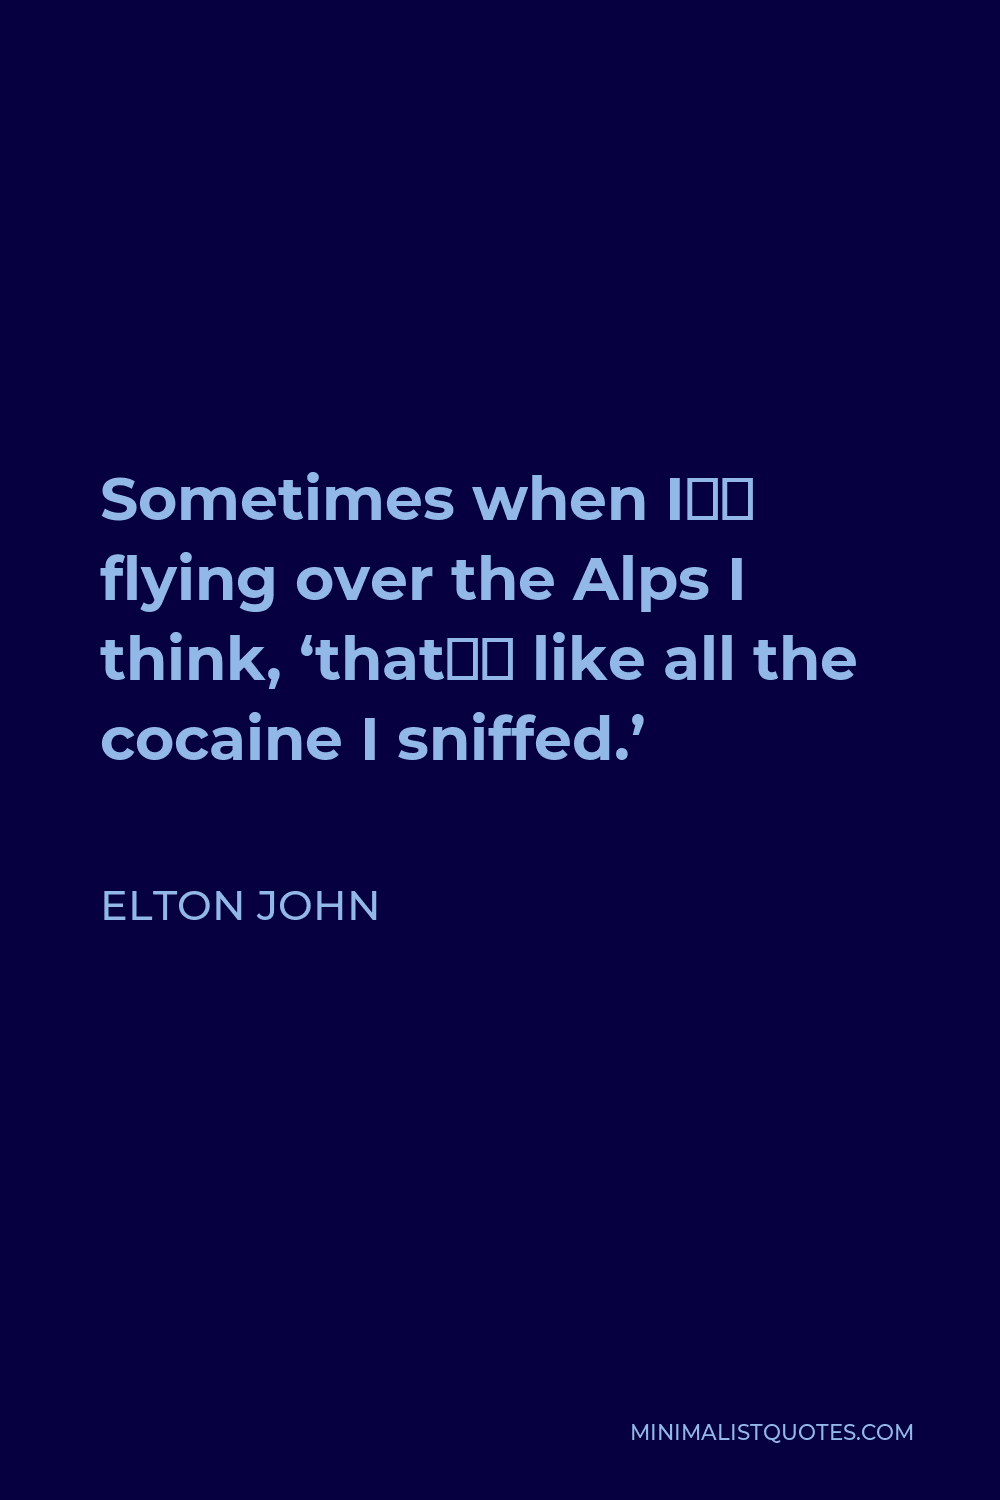 Elton John Quote - Sometimes when I'm flying over the Alps I think, 'that's like all the cocaine I sniffed.'